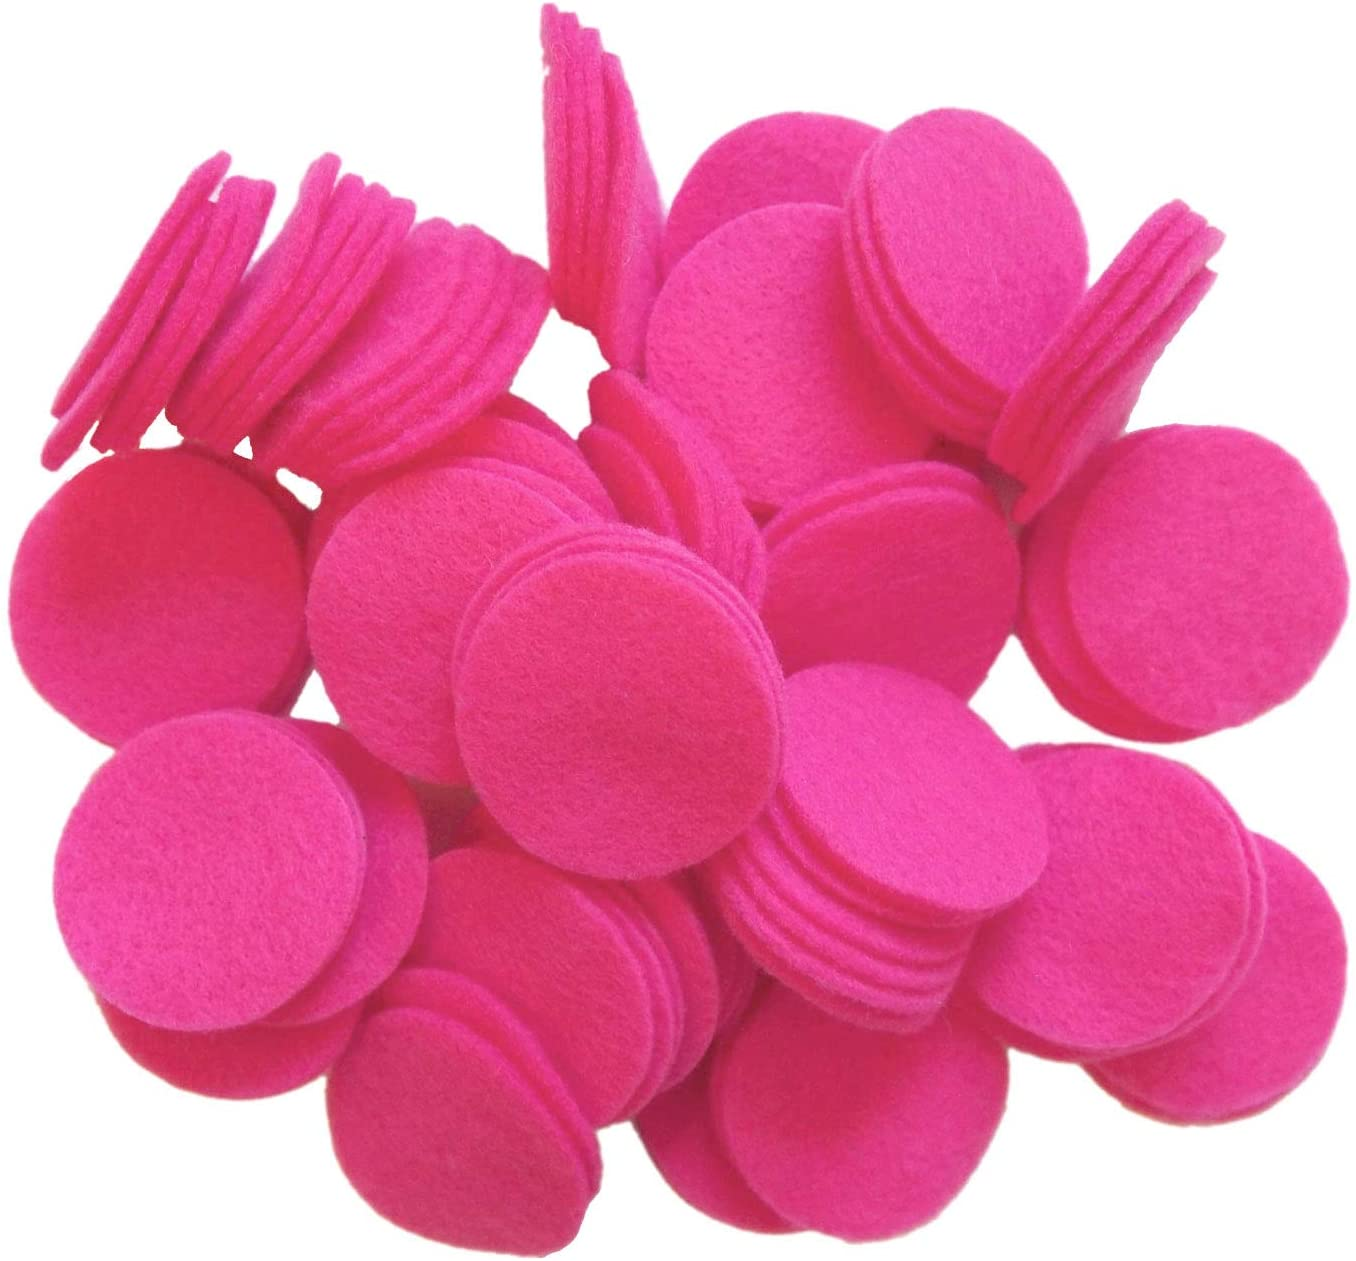 Playfully Ever After Pink Craft Felt Circles (5 Inch - 18pc)